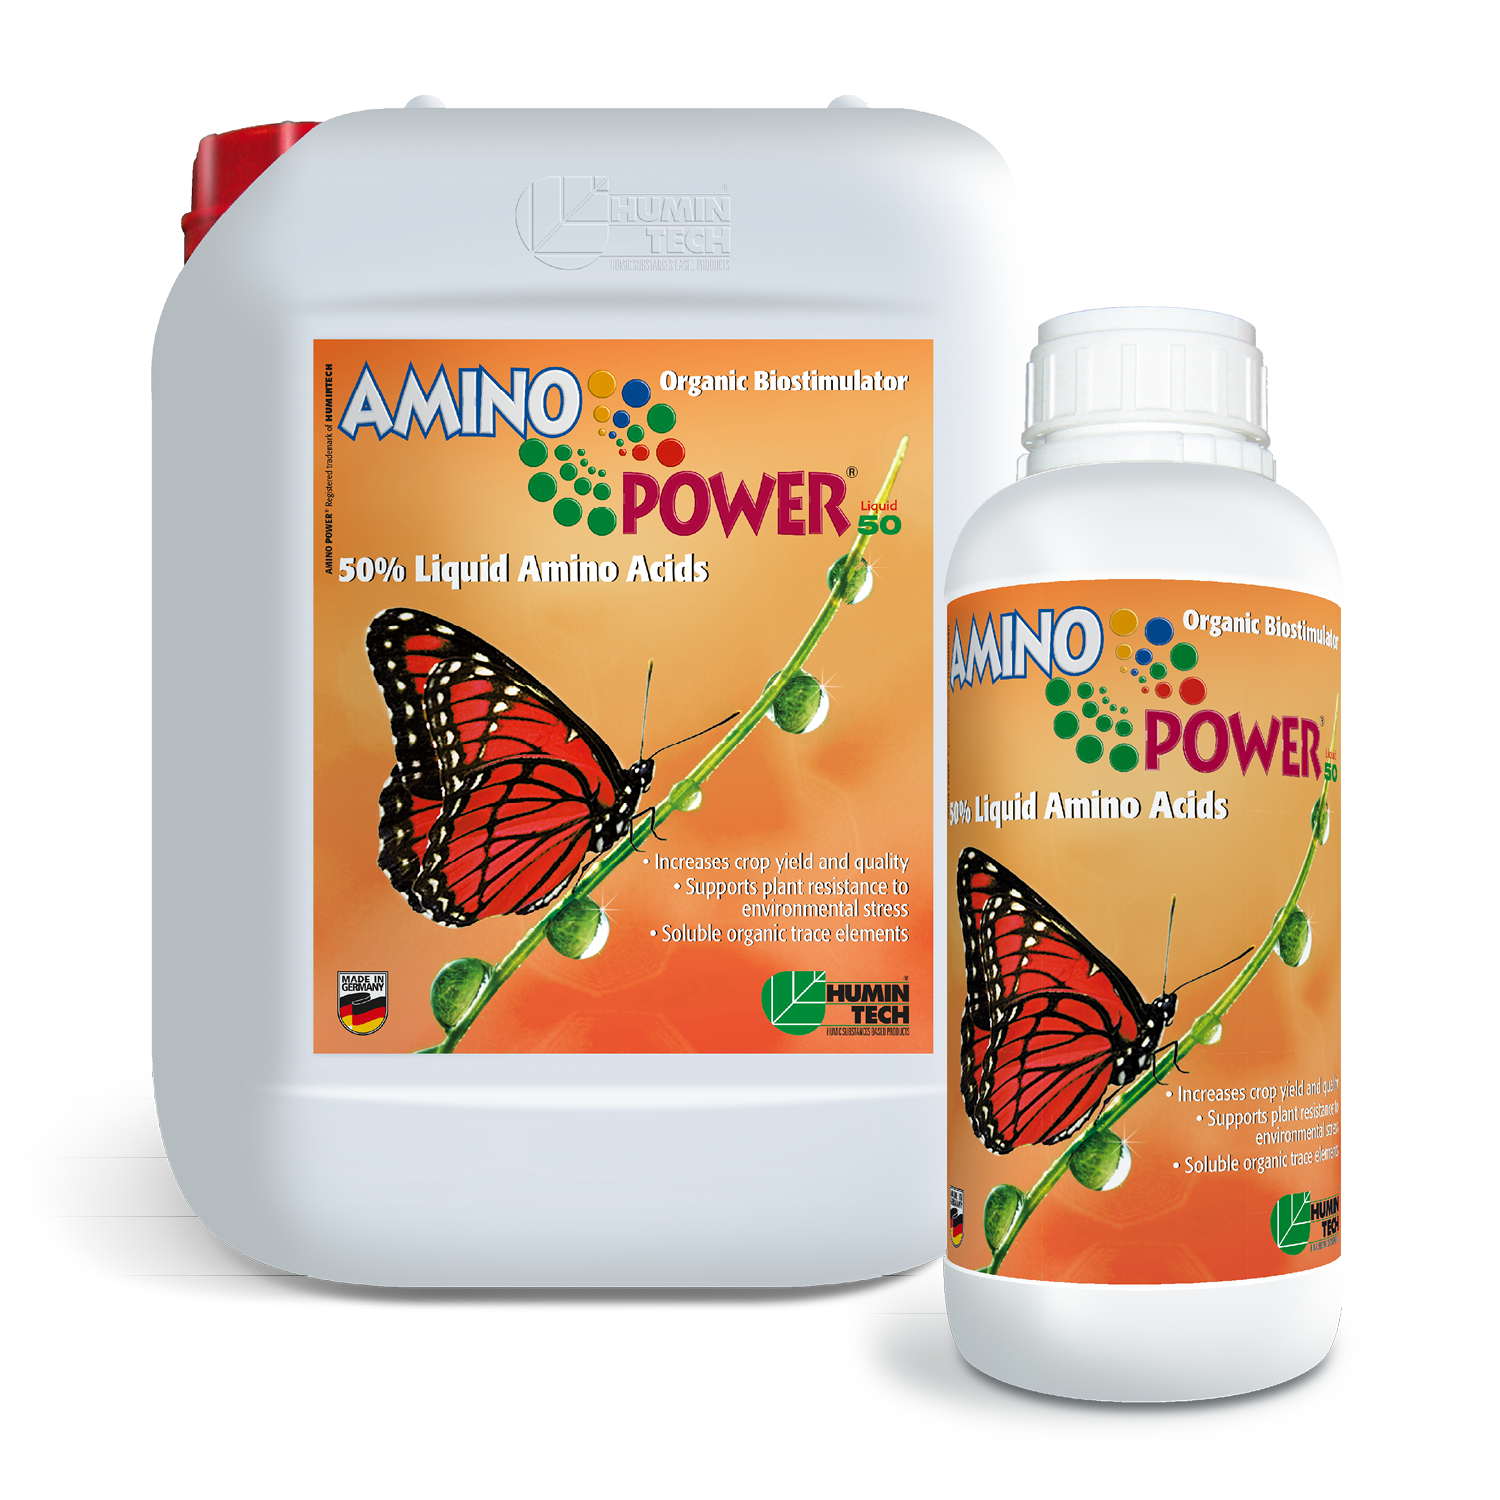 AMINO POWER Plus Liquid 50 Organic Biostimulator 50% Liquid Amino Acids